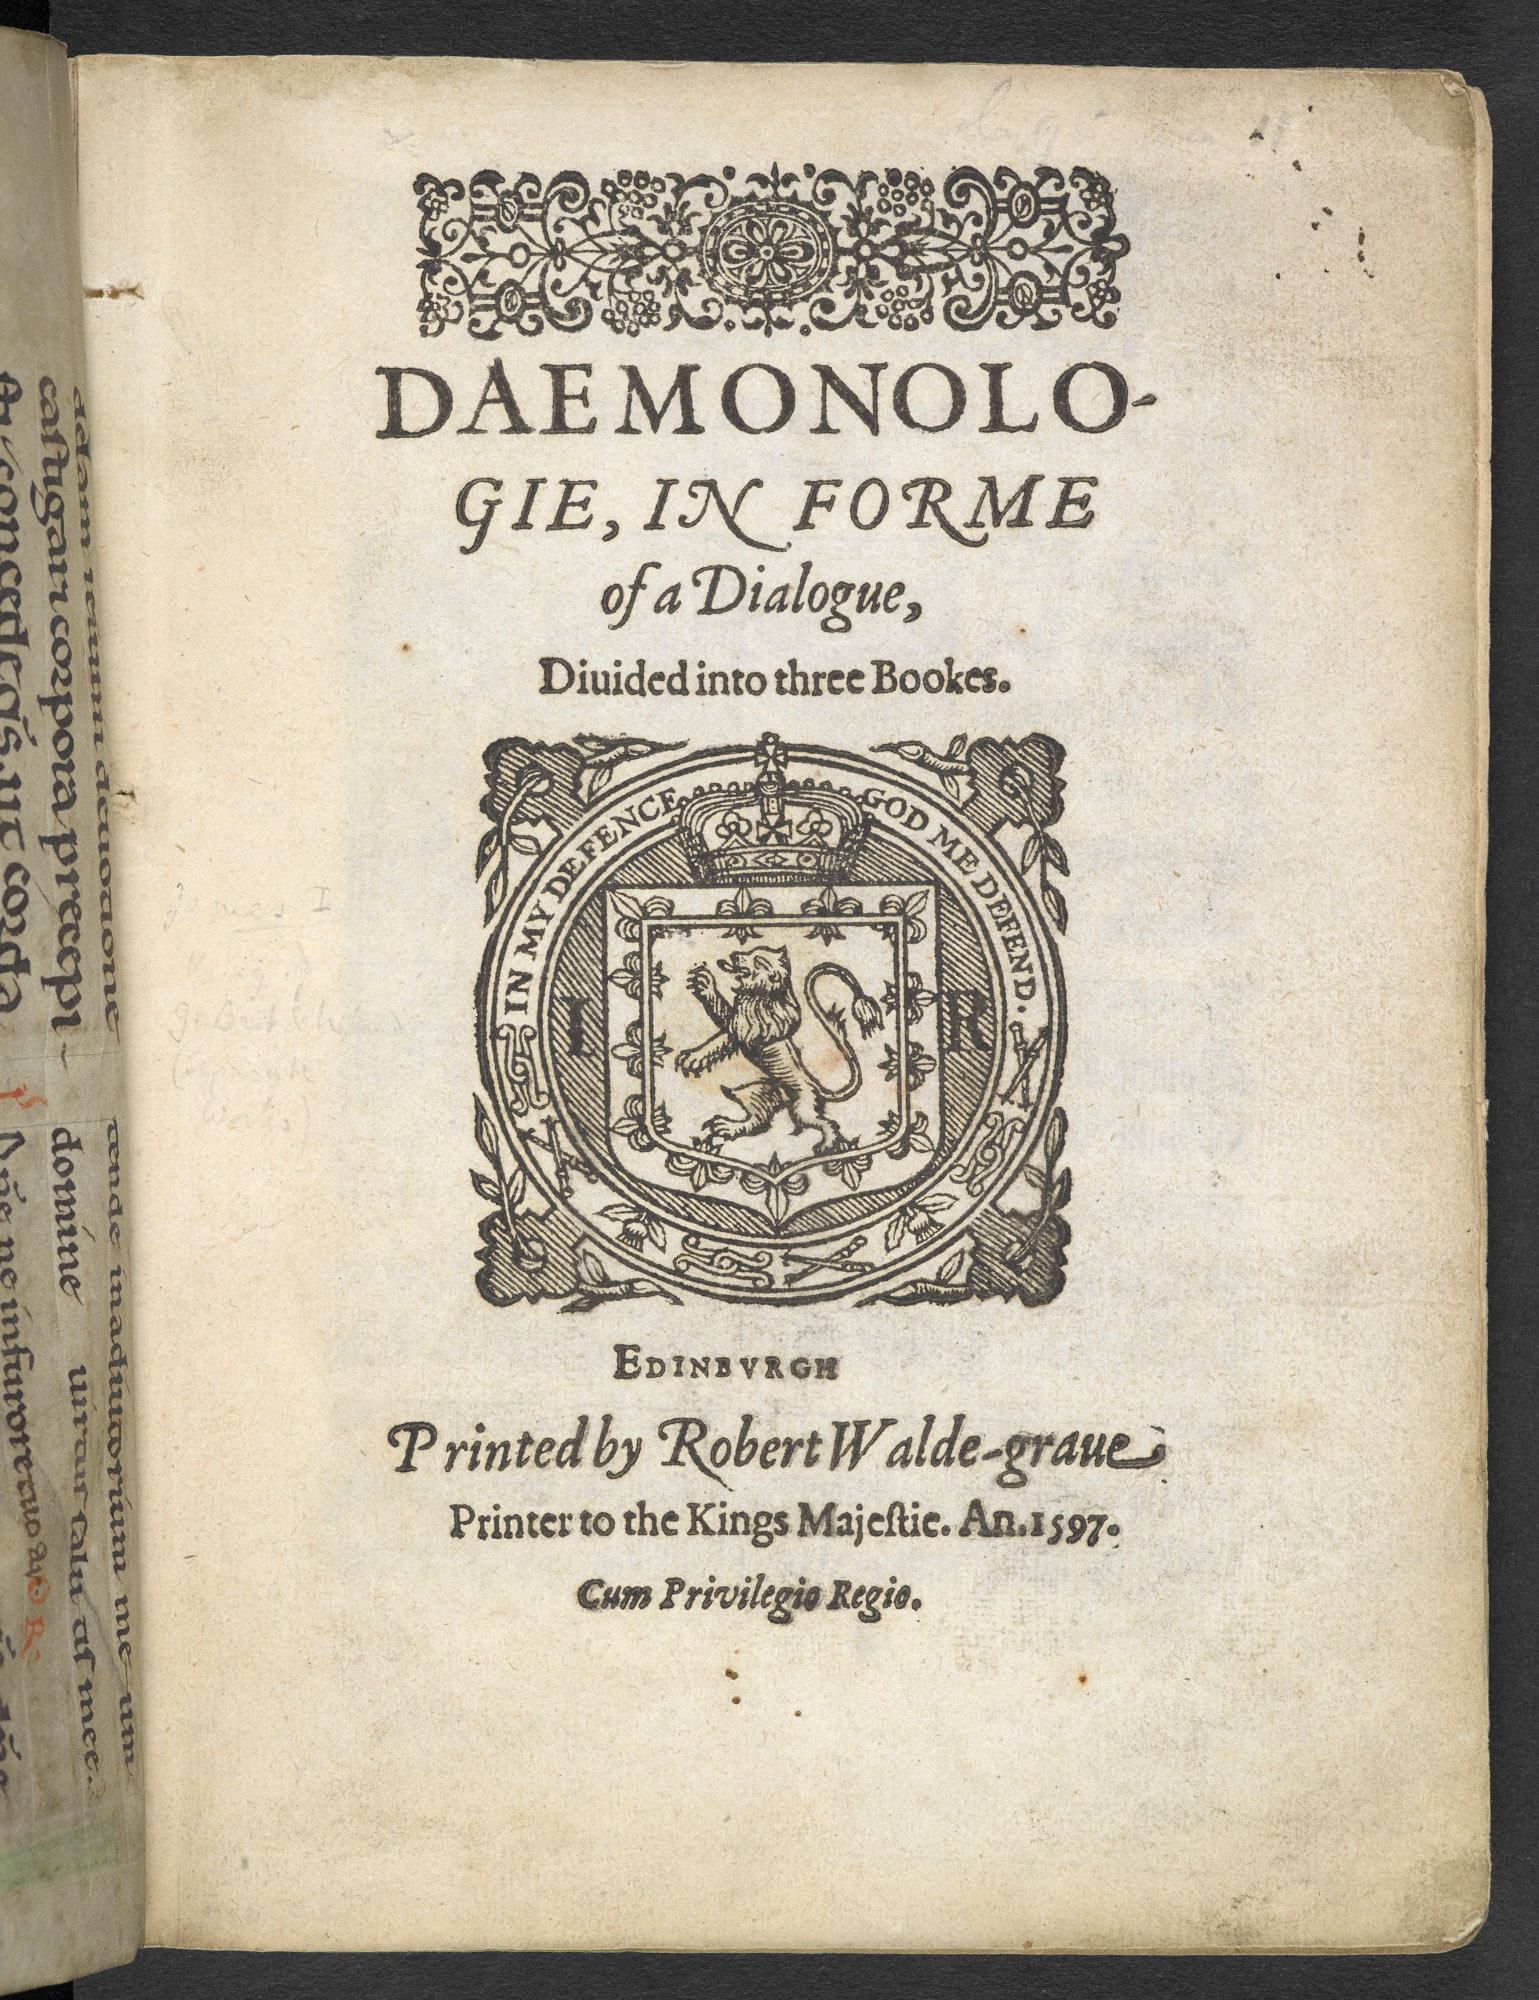 An image of the front page of Daemonologie, a book largely responsible for the 17th century witch hunts.